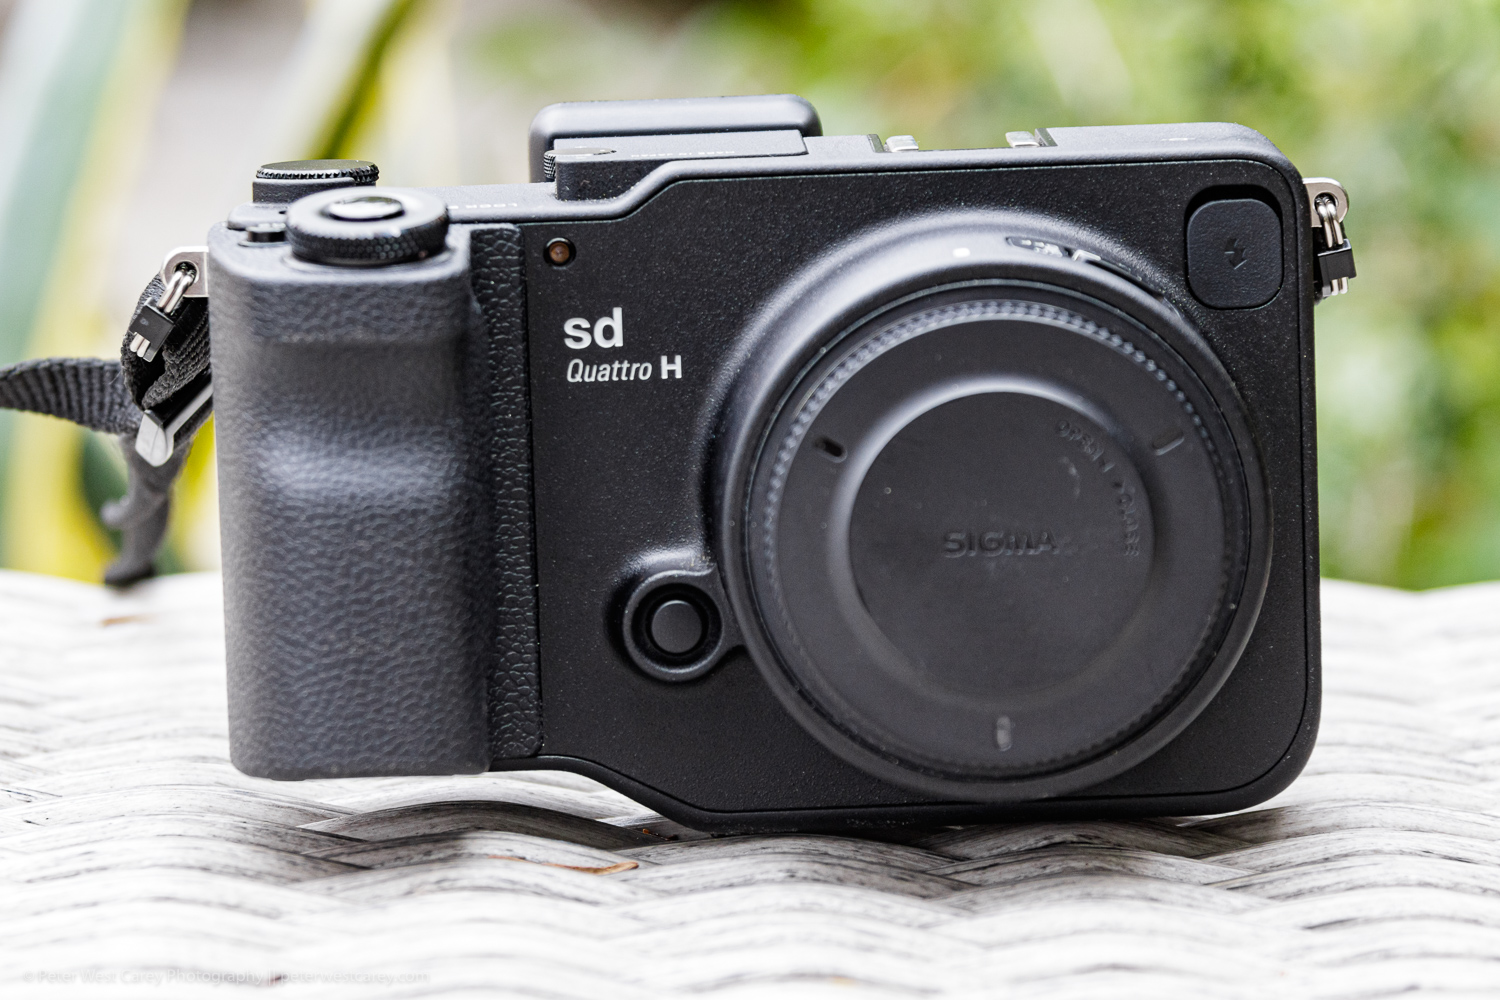 https://i0.wp.com/digital-photography-school.com/wp-content/uploads/2019/07/Sigma-sd-quattro-H-review-PWC-6744.jpg?resize=1500%2C1000&ssl=1